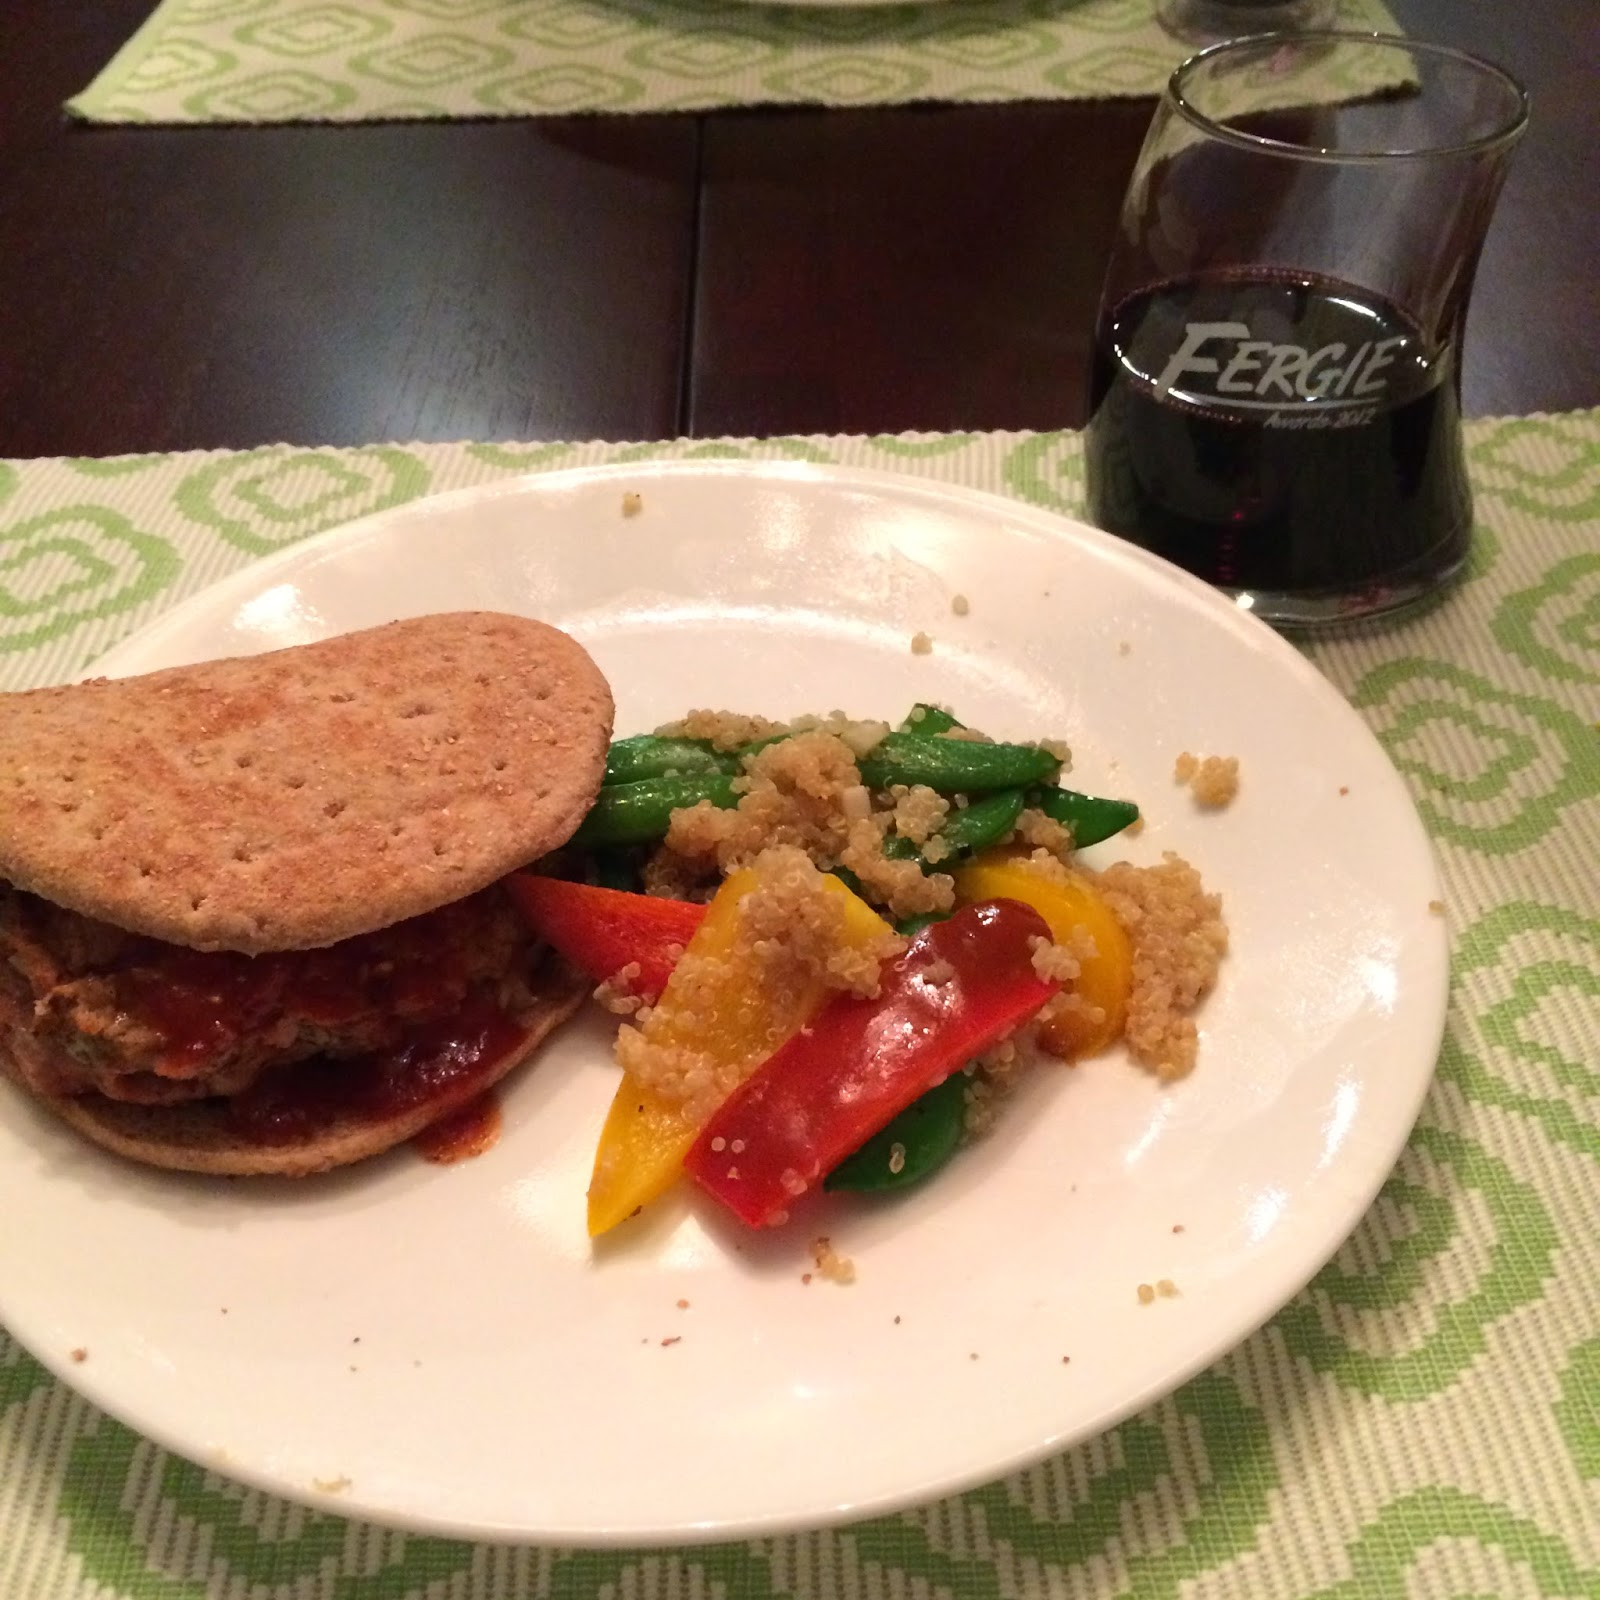 ... Sweet: Goat Cheese Stuffed Turkey Burgers with Tangy Peach BBQ Sauce